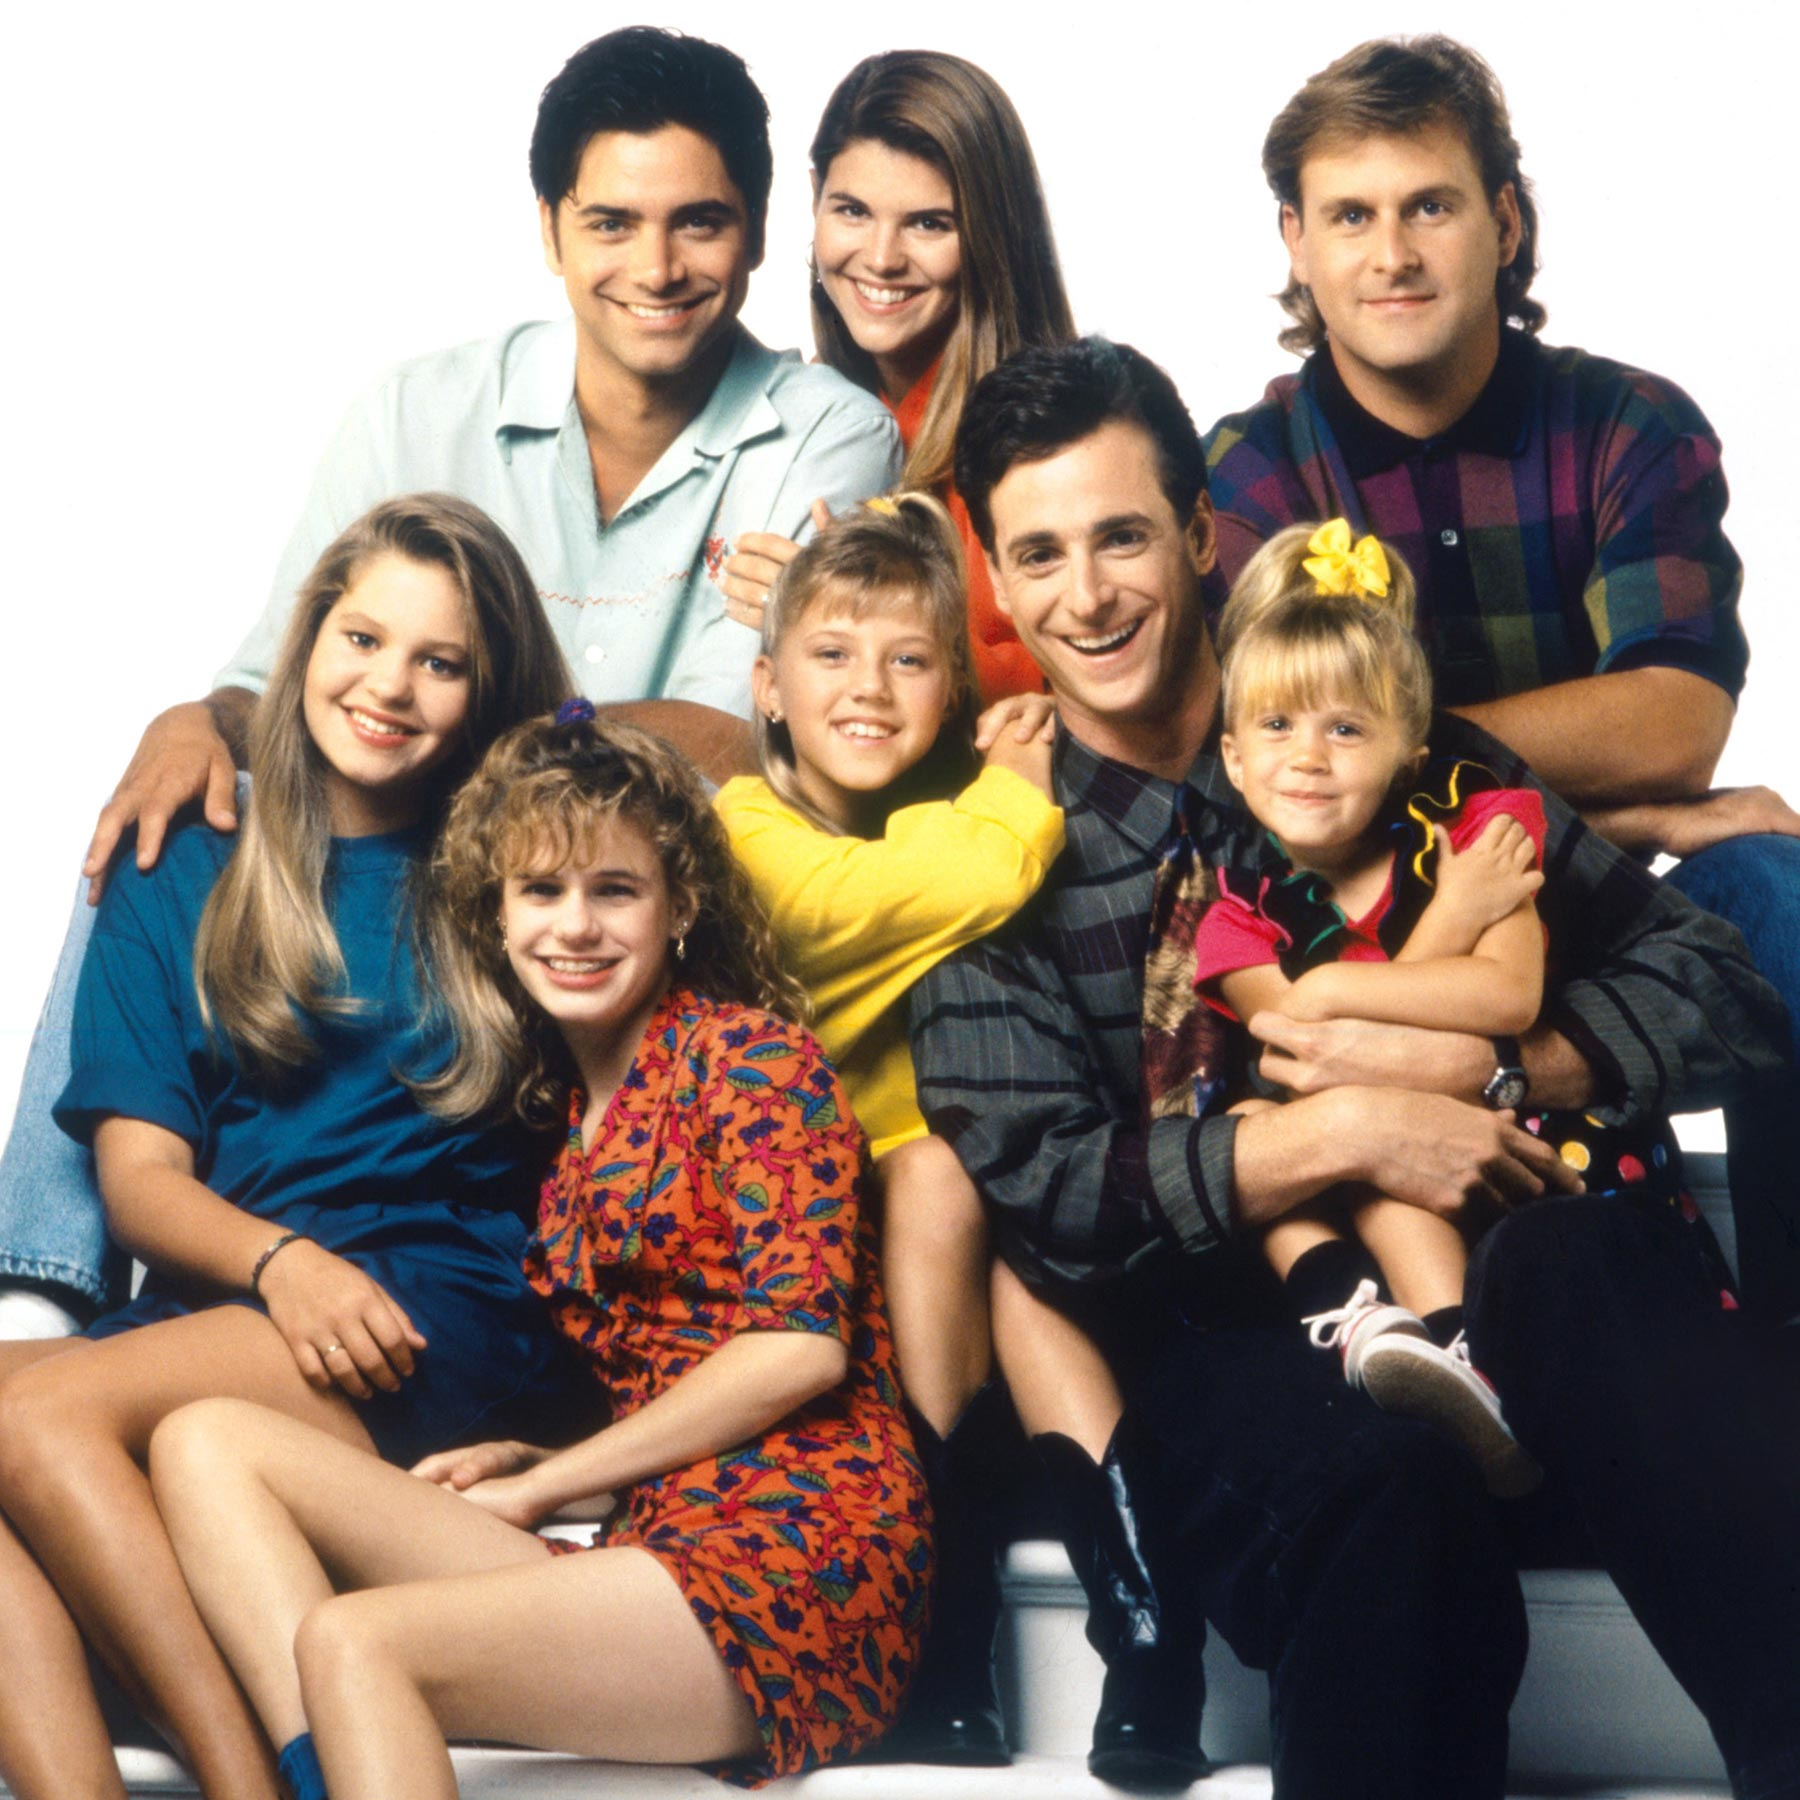 FULL HOUSE, (top, from left): John Stamos, Lori Loughlin, Dave Coulier, (bottom): Candace Cameron,